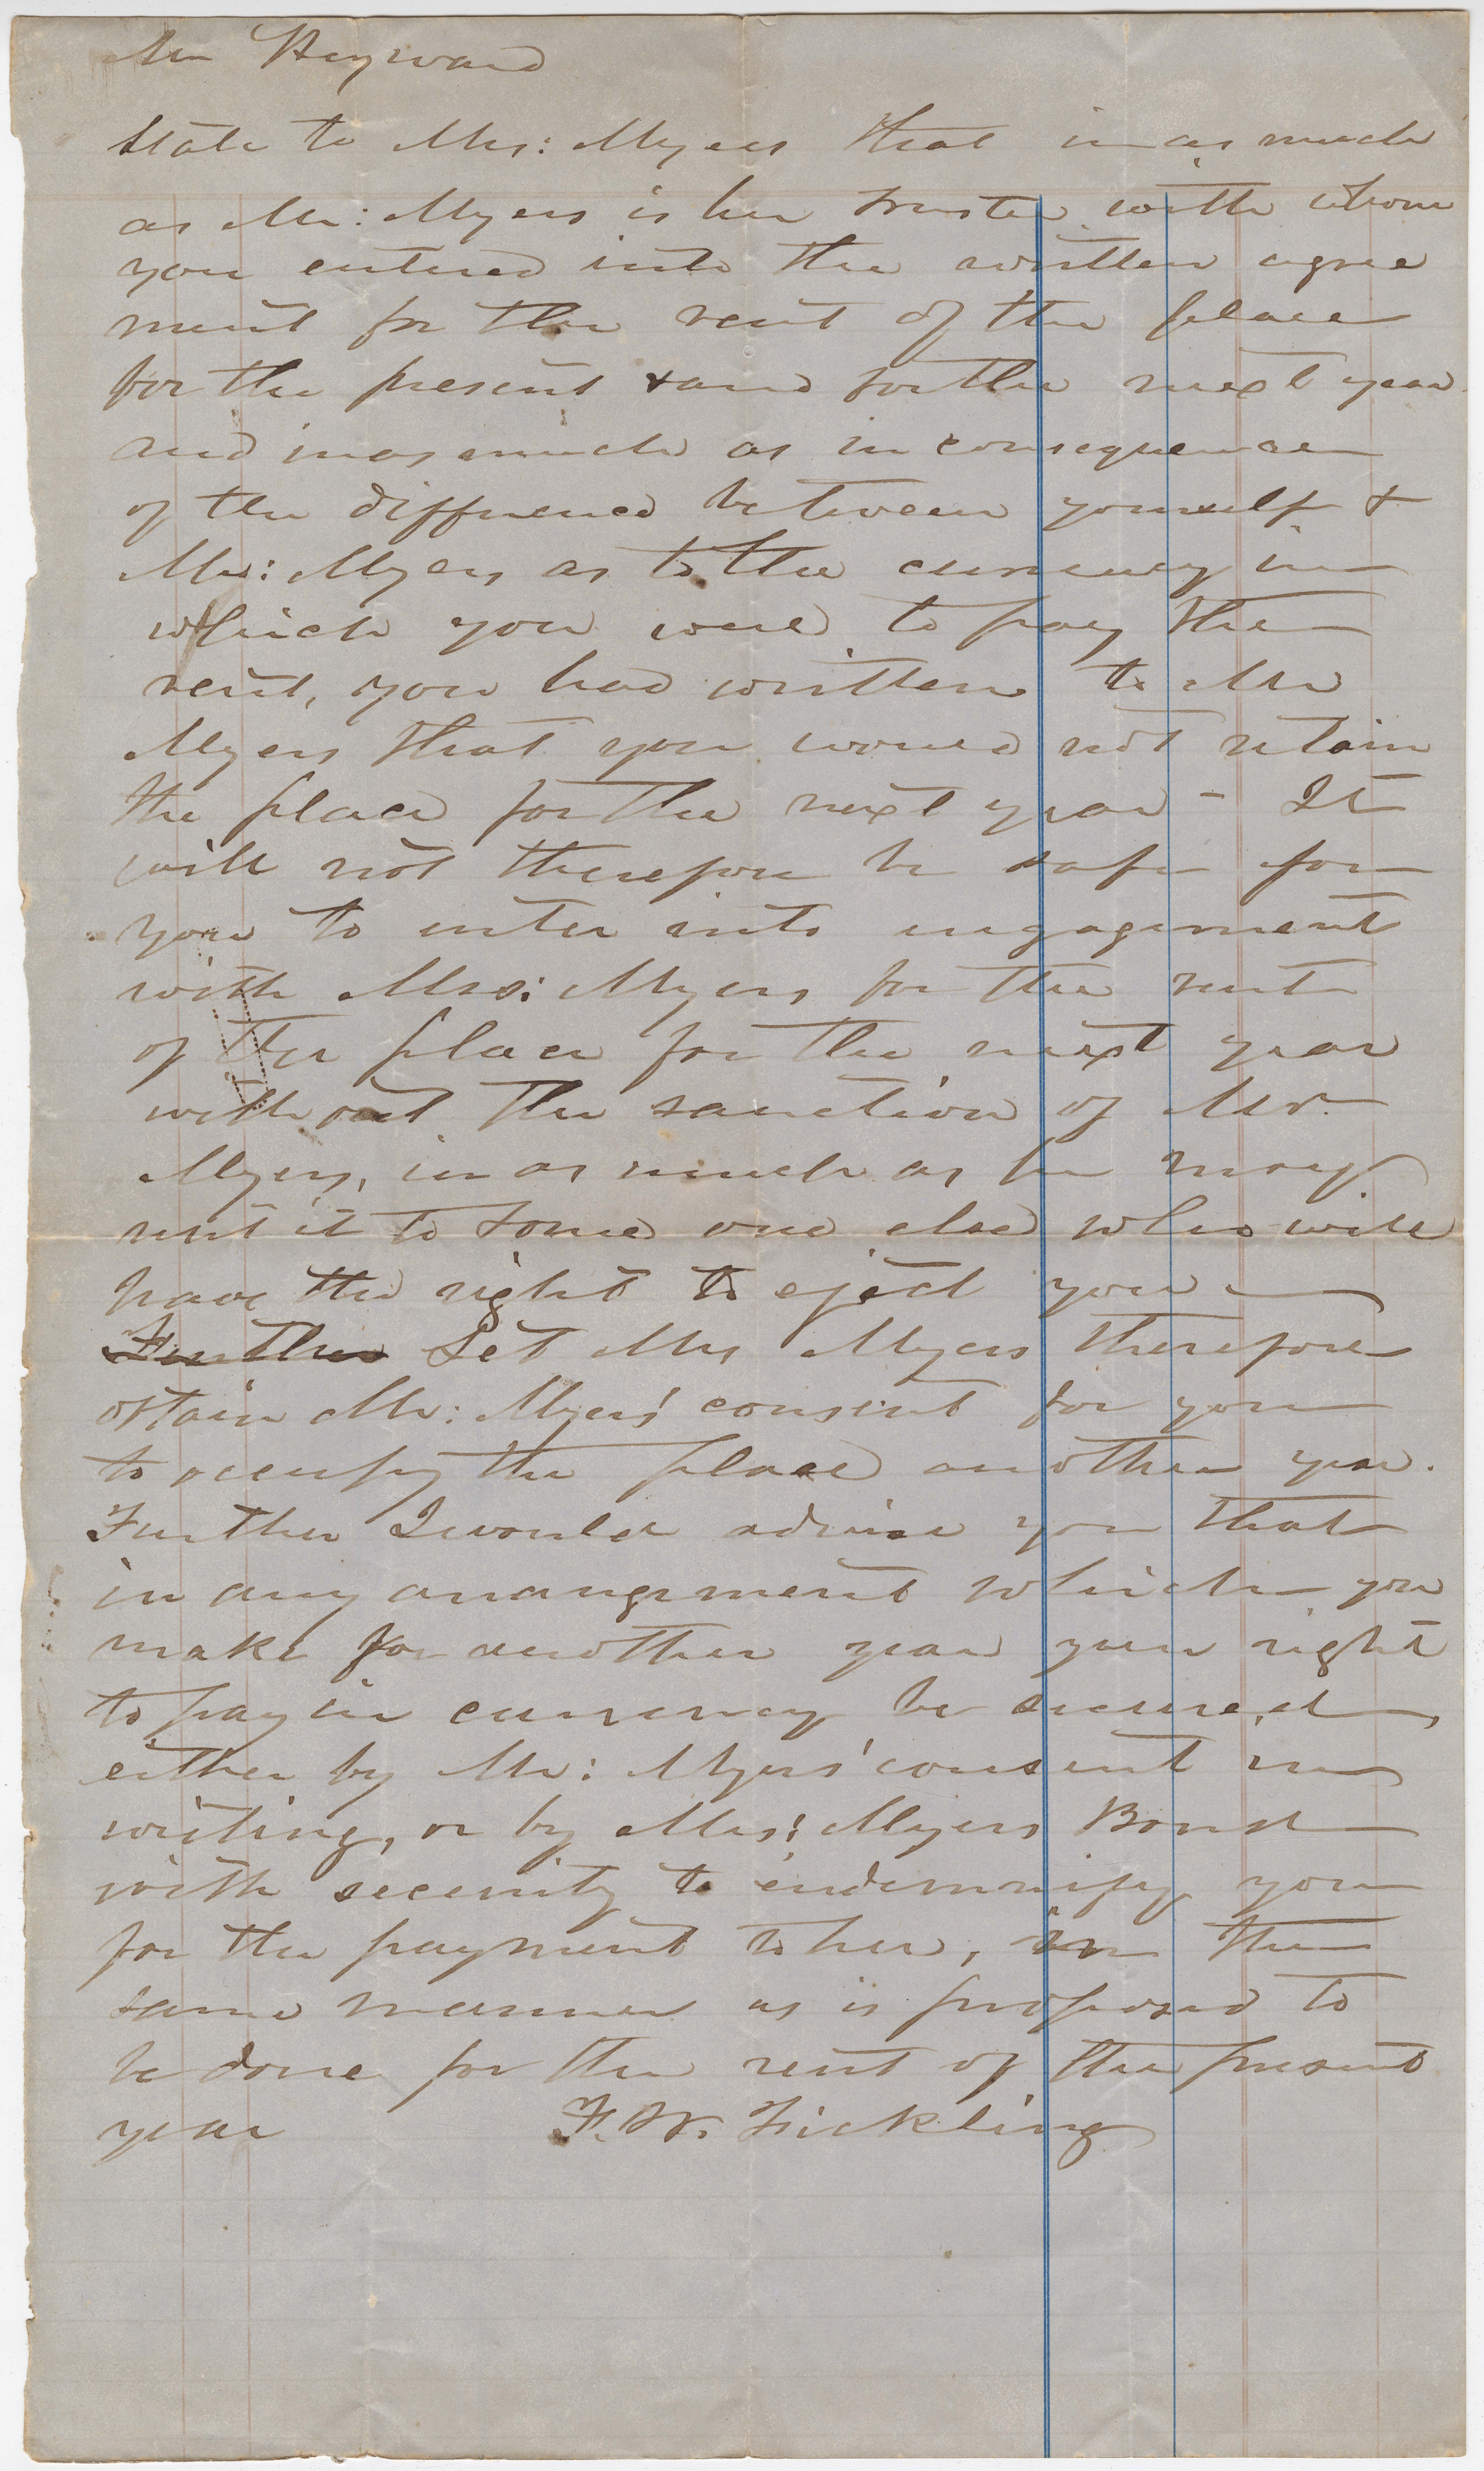 361. Letter to Mr. James B. Heyward from F.M. Fickling -- ca. 1864